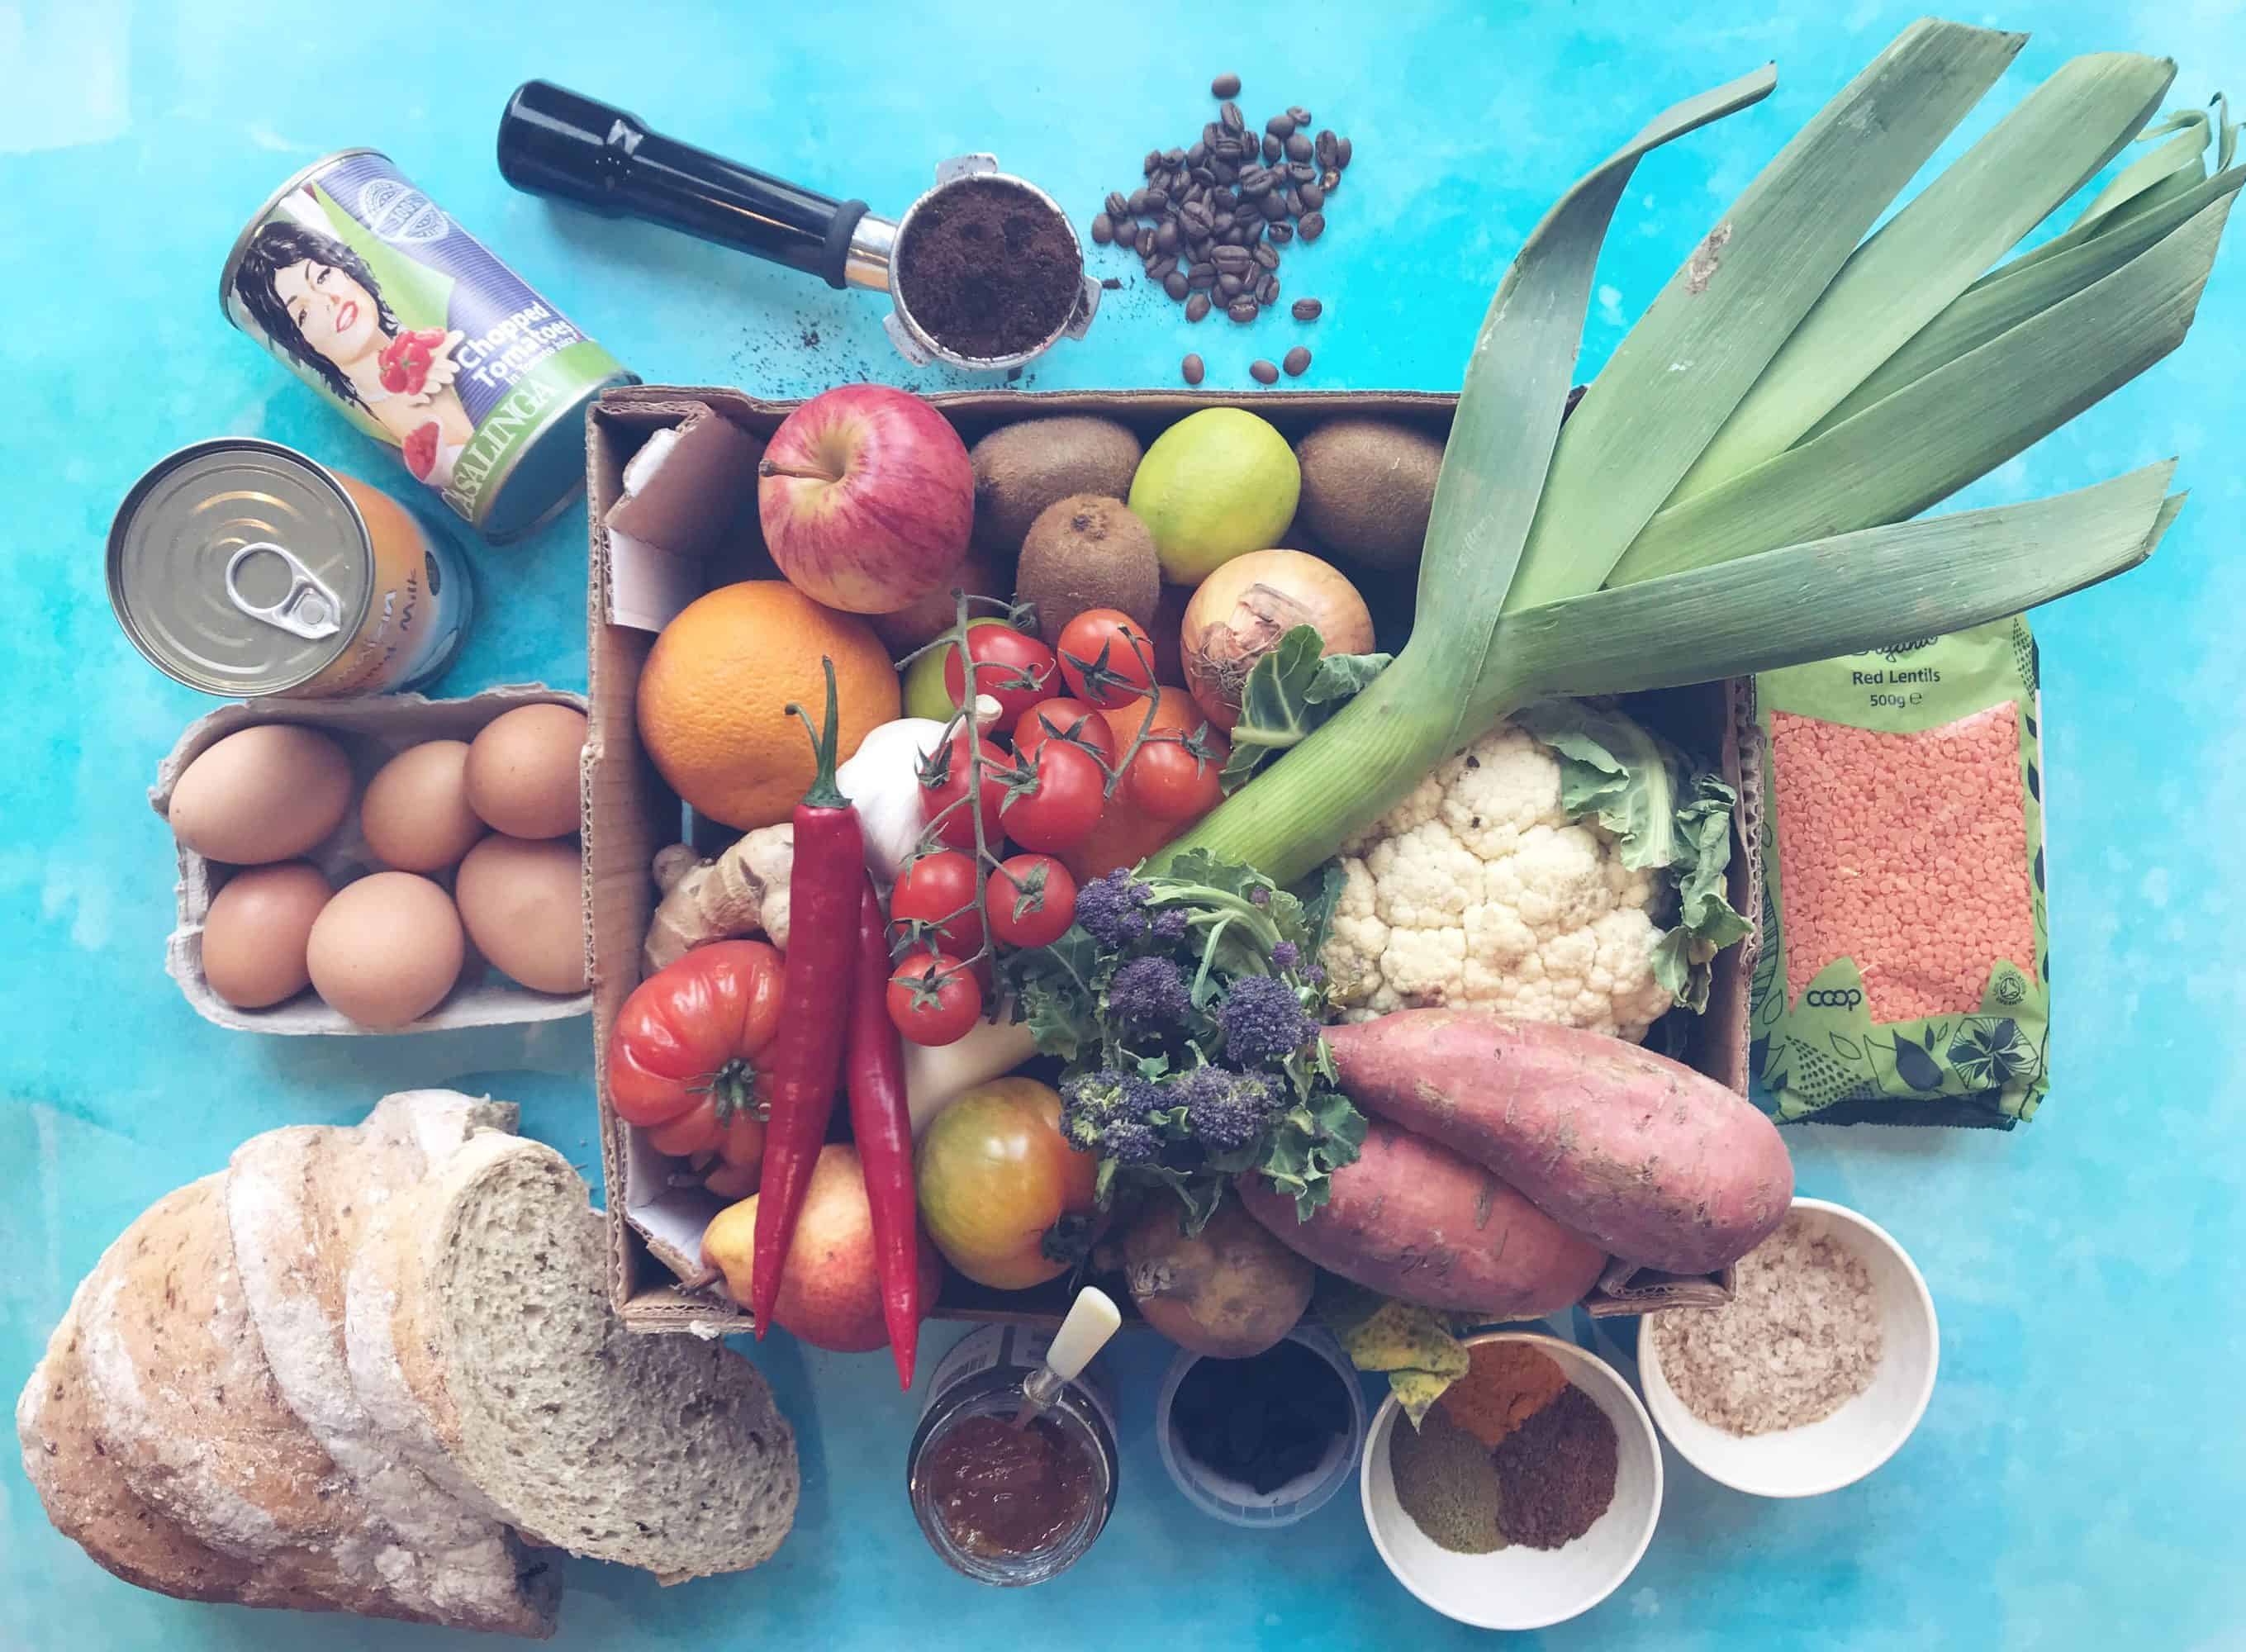 Shopping bought from Farmdrop - the UK's first ethical grocer